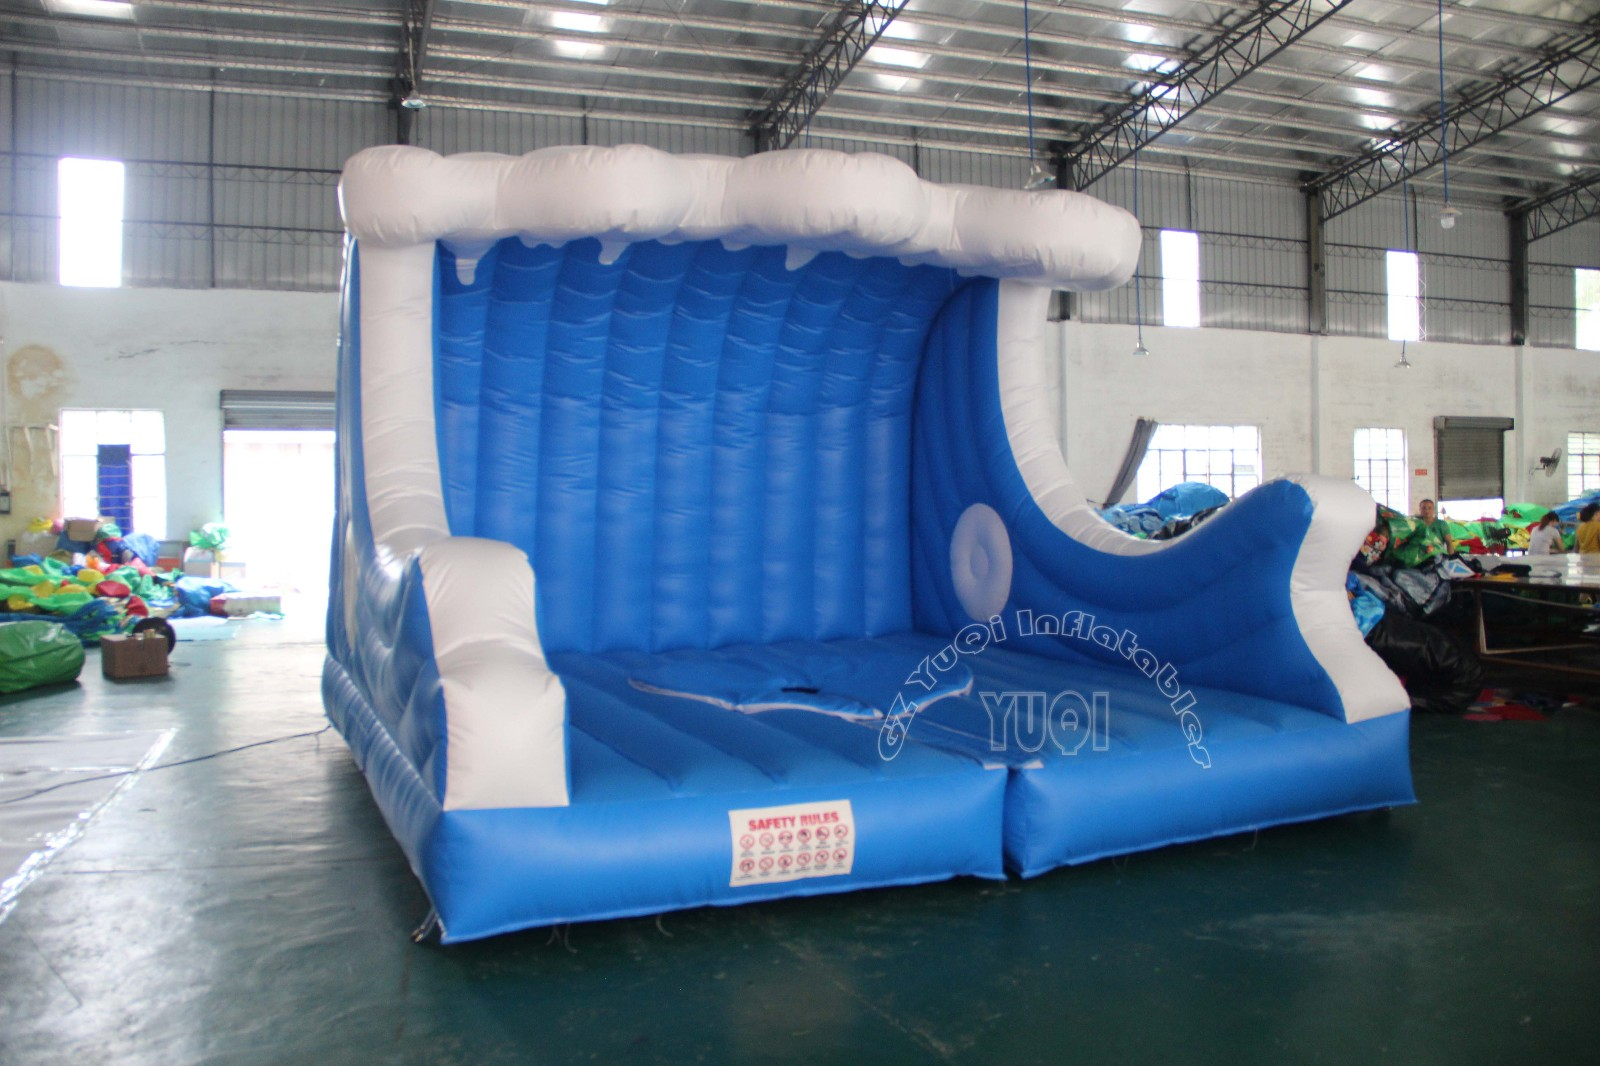 YUQI-Yq678 Popular Crazy Surf Inflatable Sport Games | Inflatable Sport